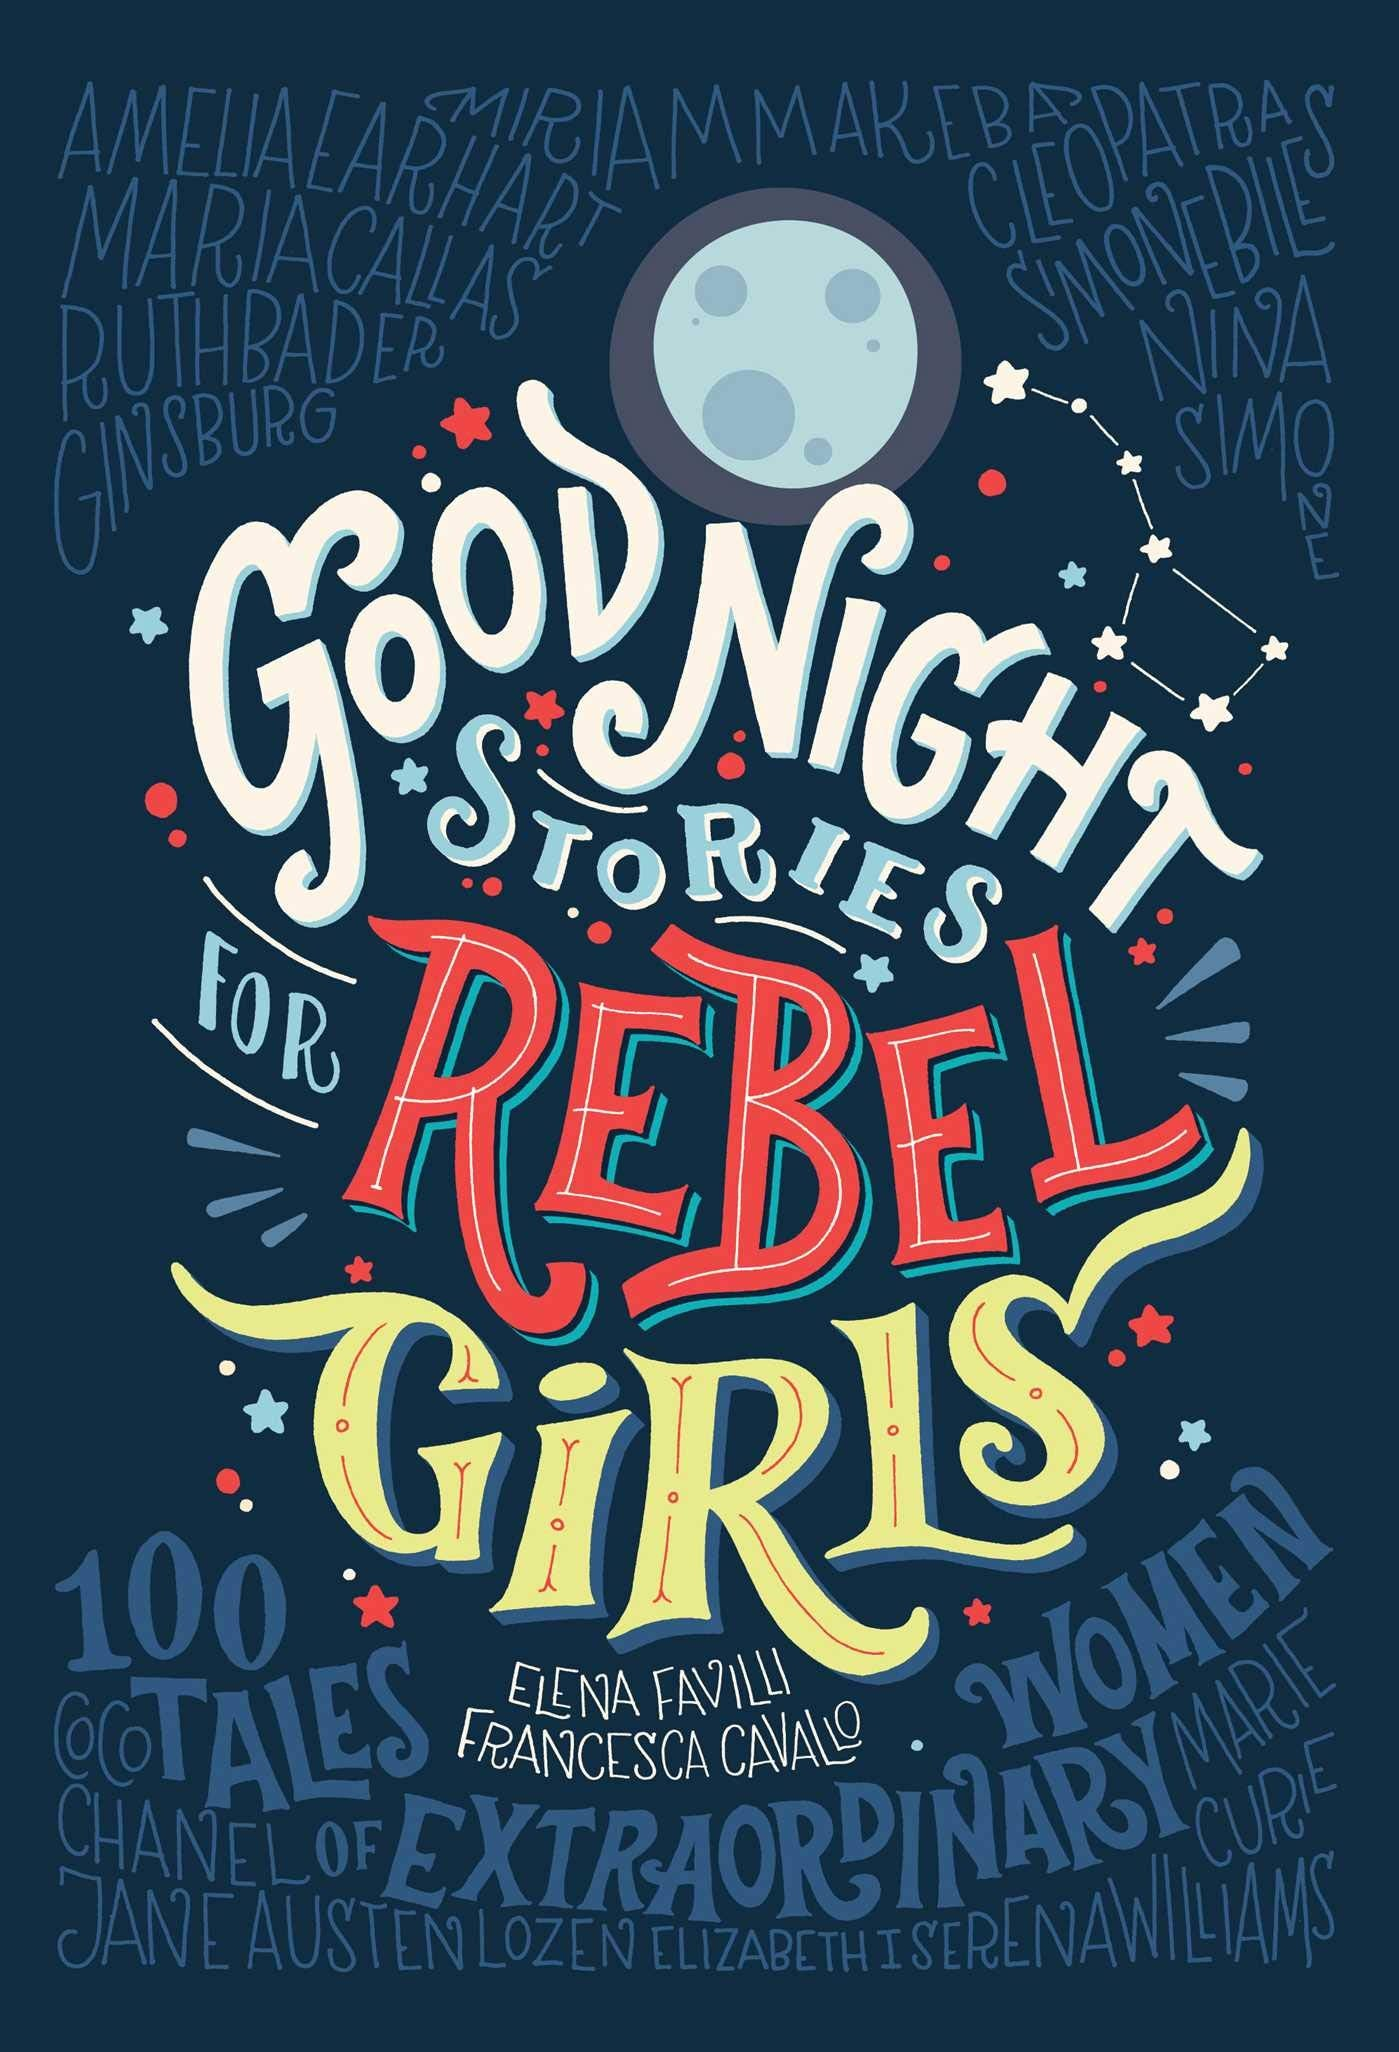 Good Night Stories for Rebel Girls: 100 Tales of Extraordinary Women  by Rebel Girls (Author)